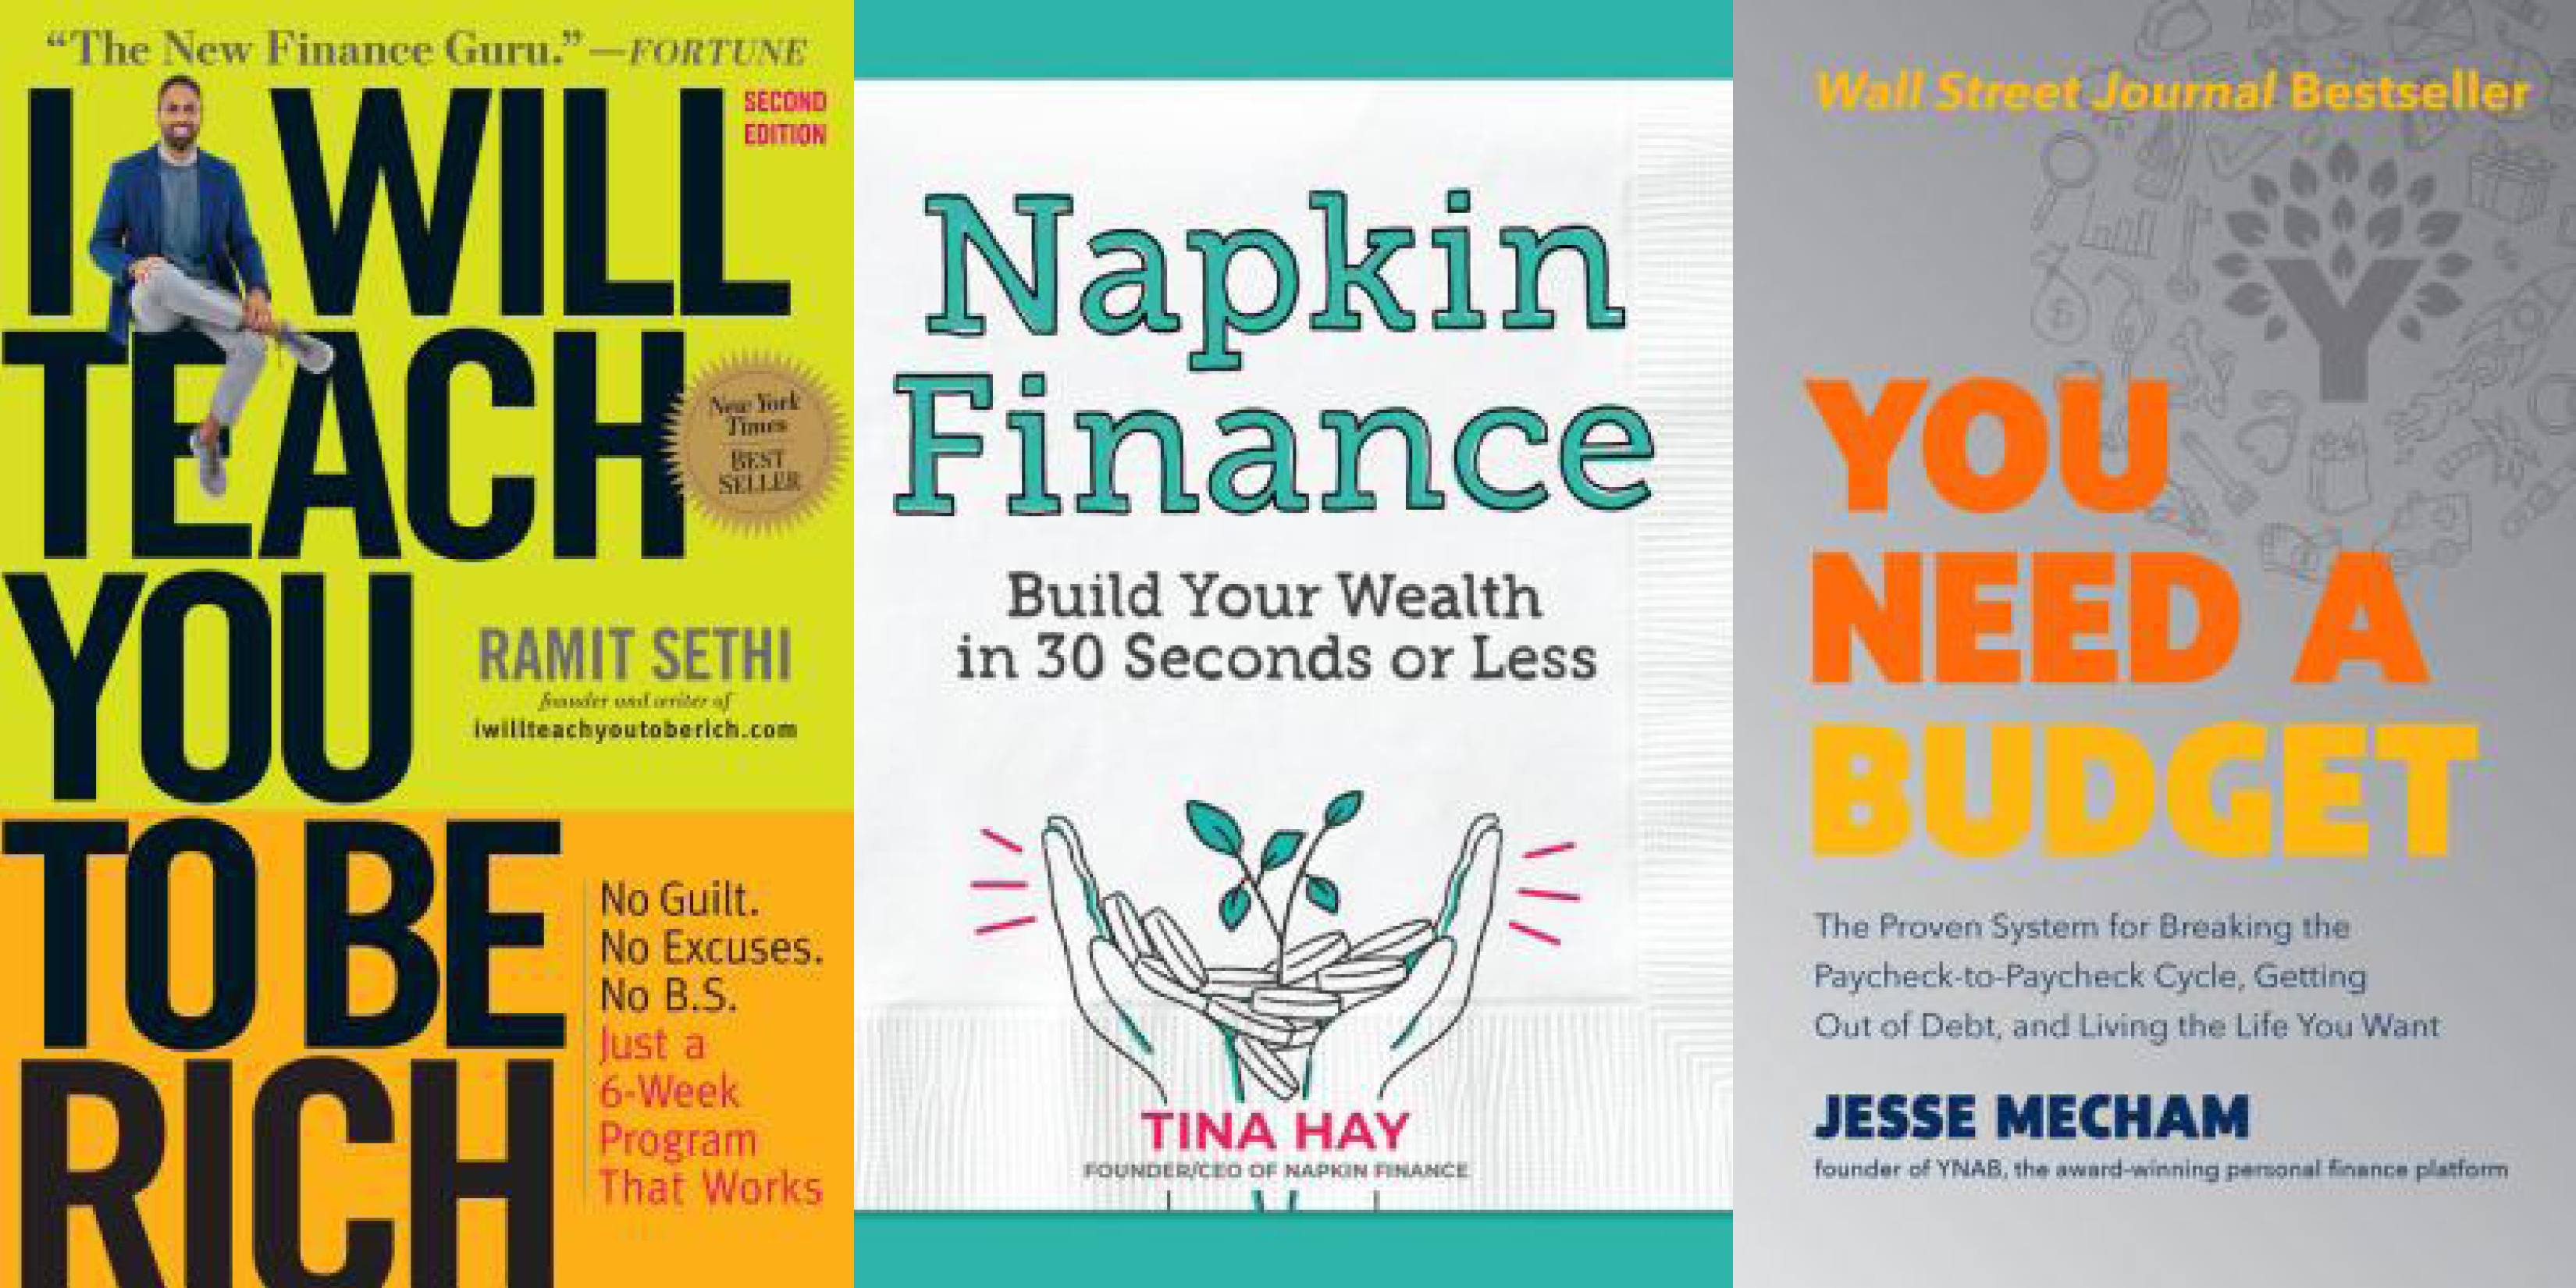 Need a little help with personal finances? Here are some resources